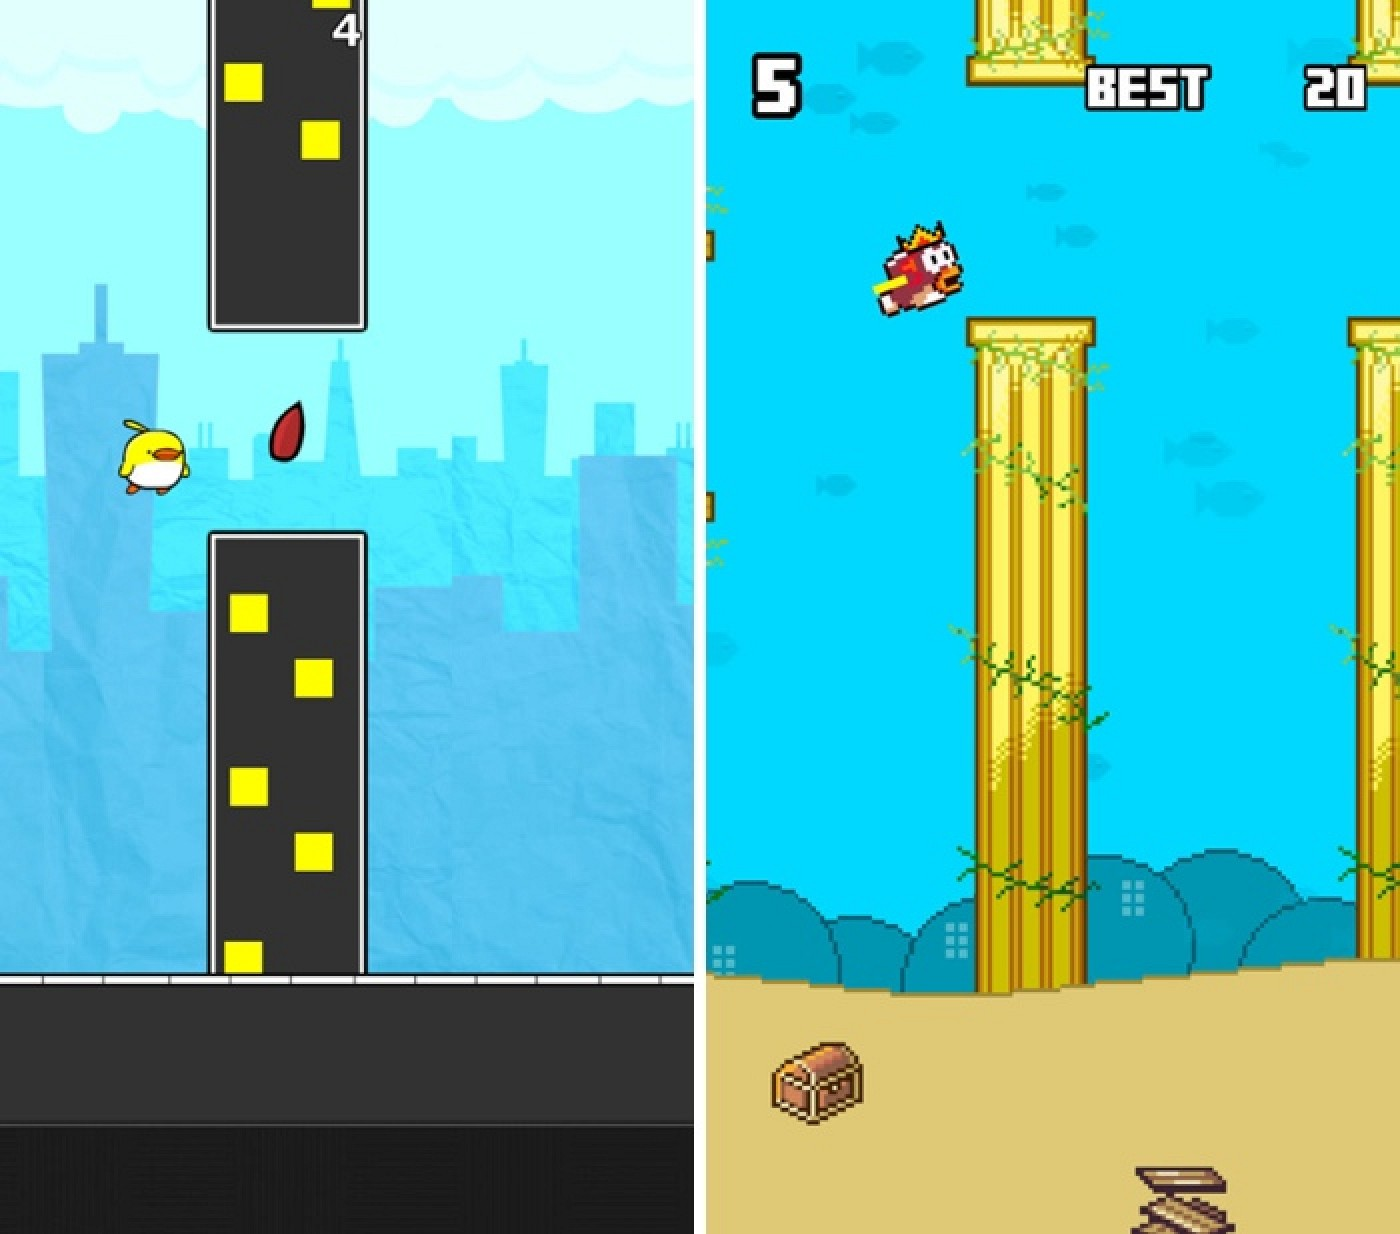 Flappy bird game to be re released but not anytime soon creator